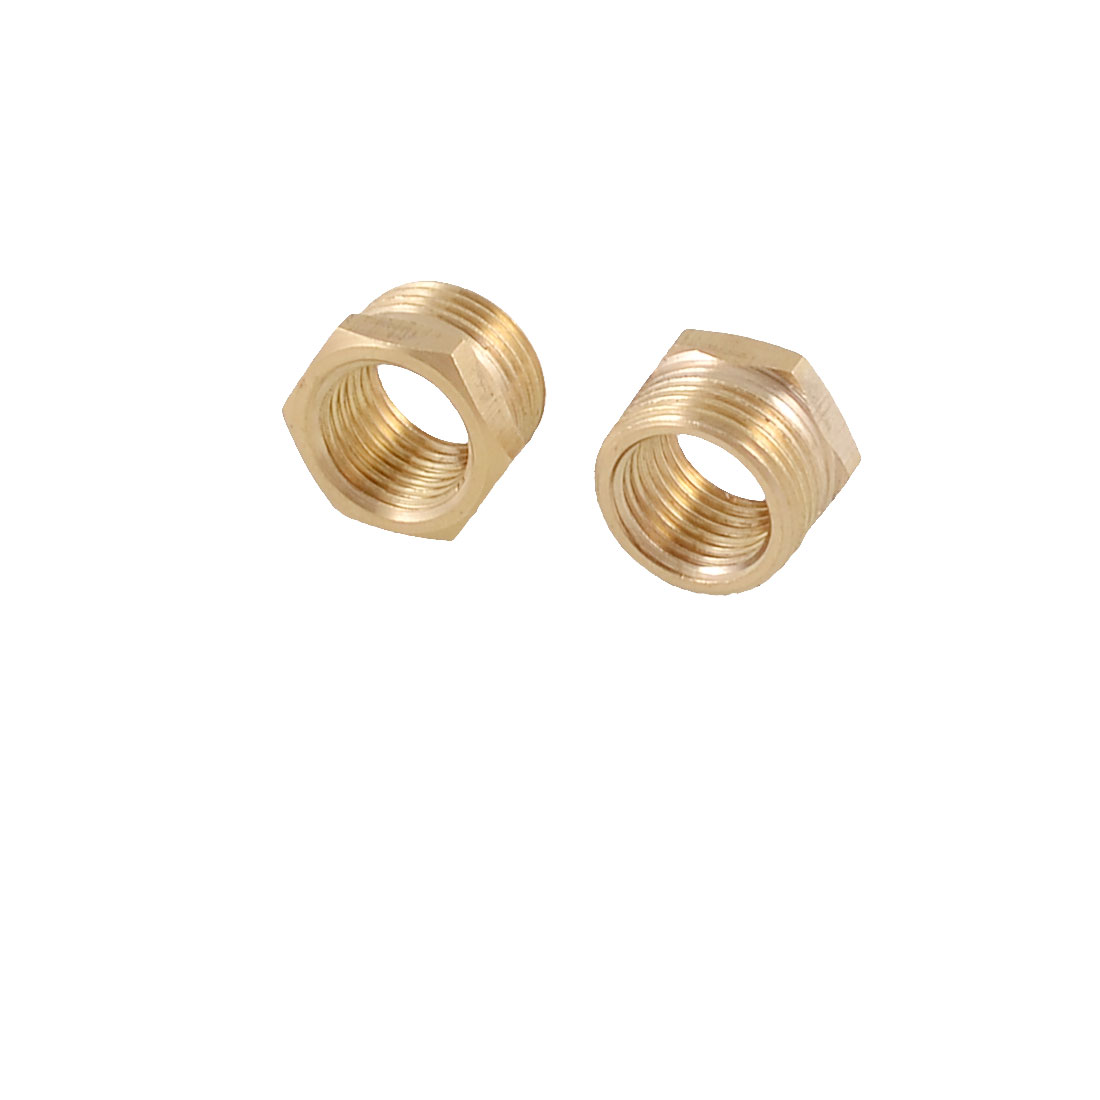 2 Pcs Hose Fitting Connector 16mm x 12mm Thread Brass Hex Bushing Gold Tone